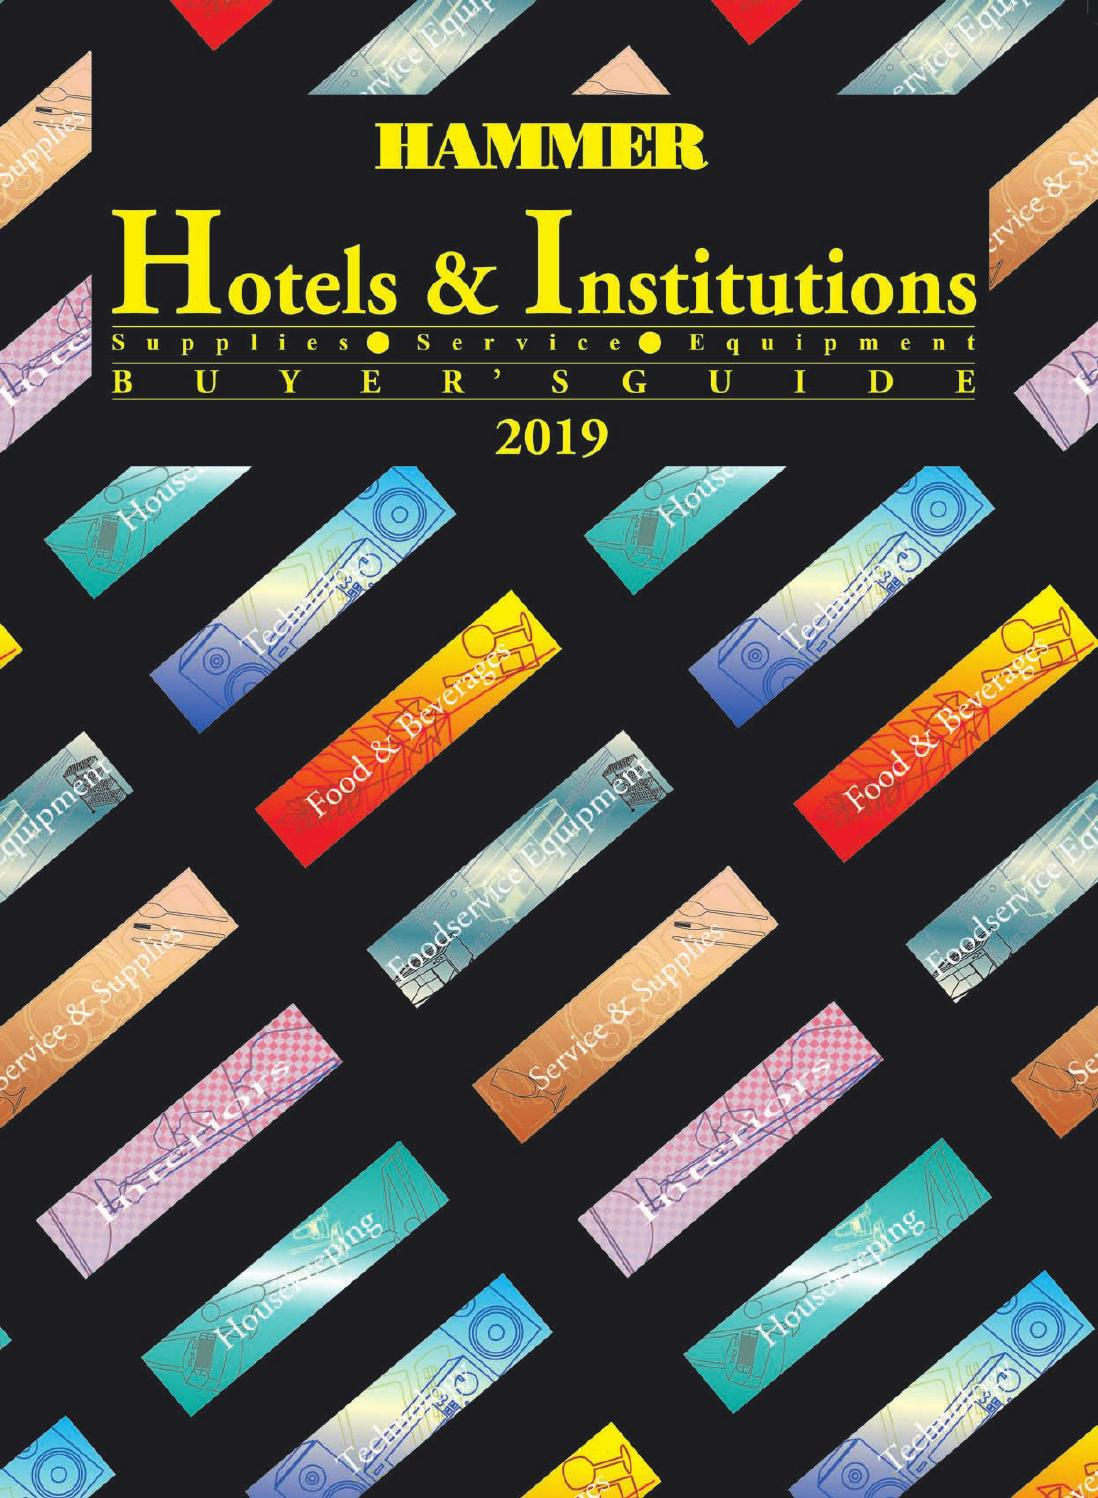 Schindl Sanitärtrennwände Nfg. Gmbh & Co Kg Annual Hotels Institutions Buyers Guide 2019 By Hammer